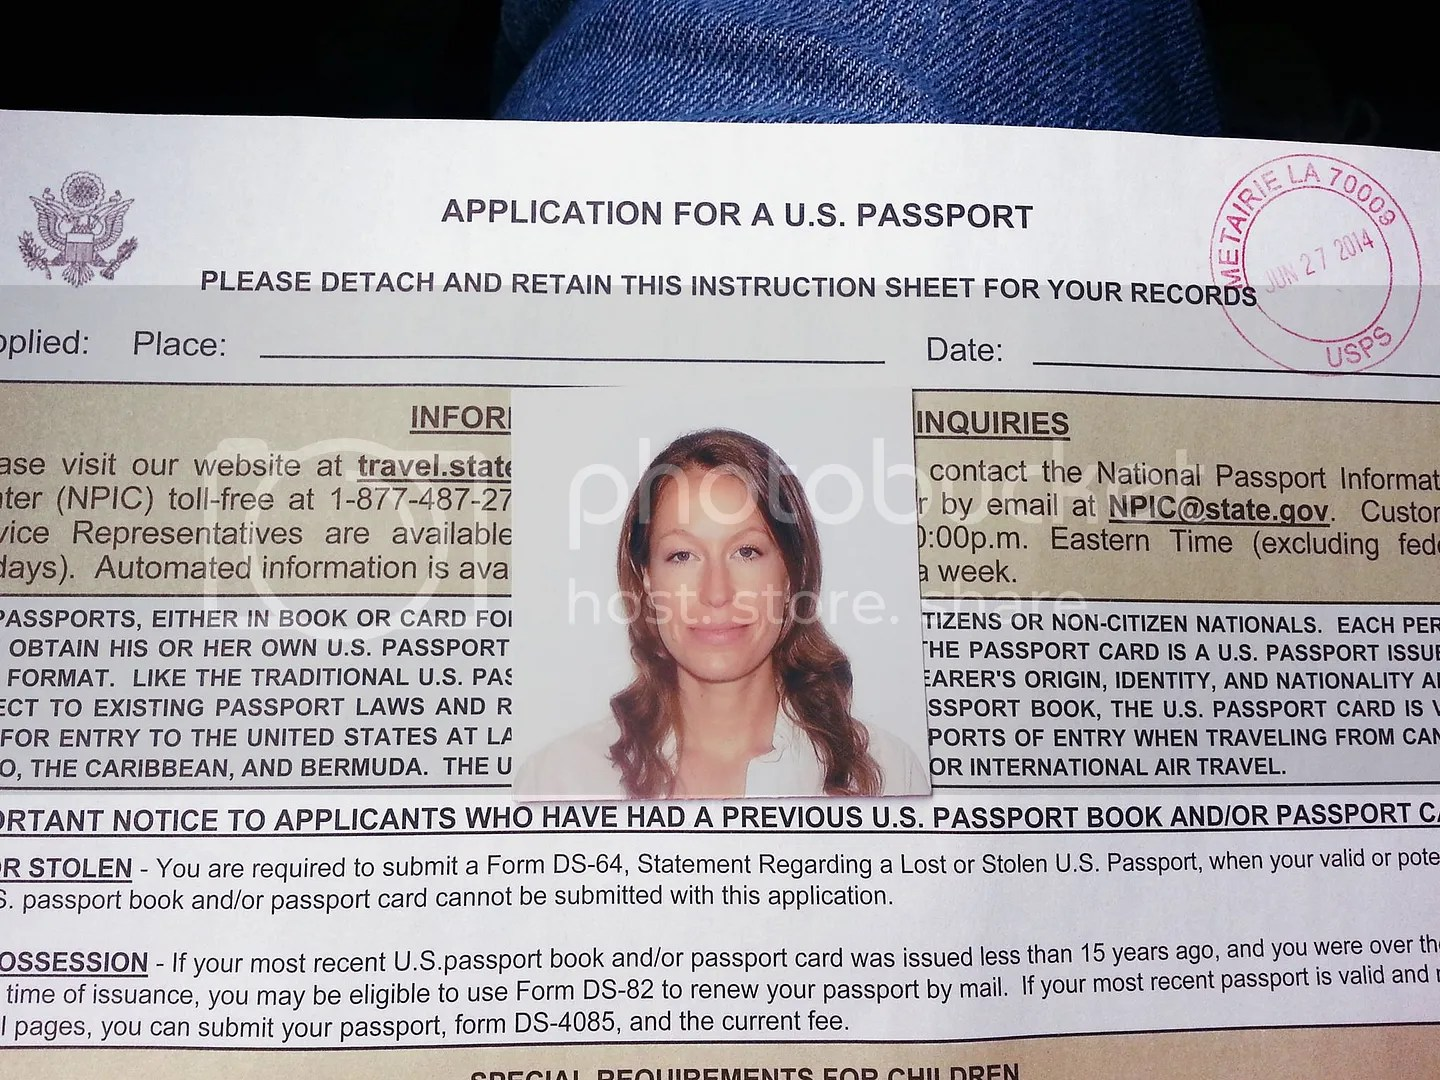 Dani's Passport photo and application